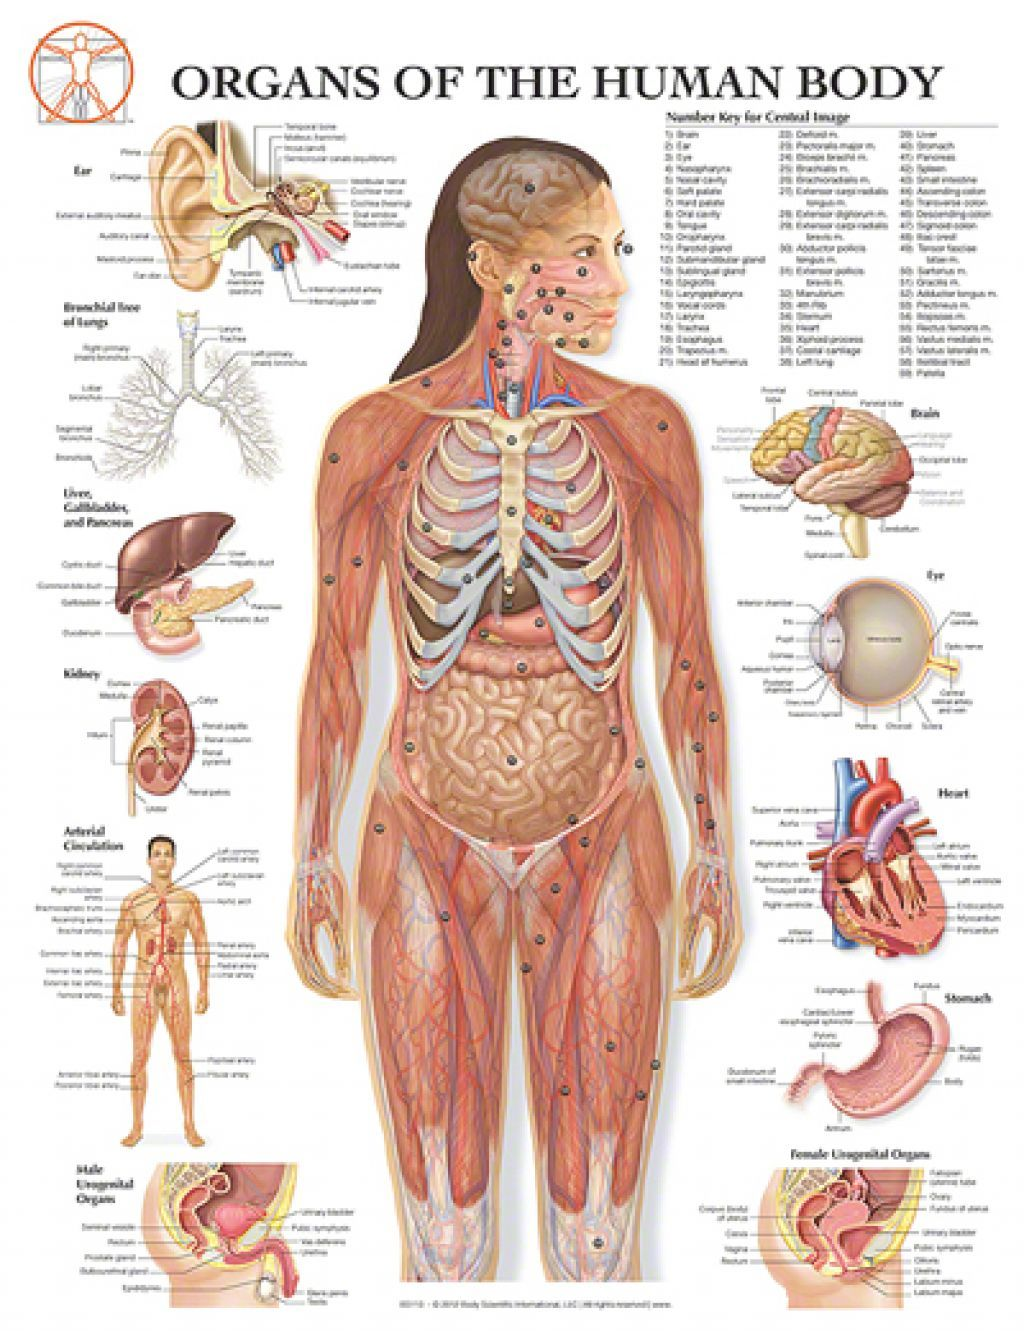 Organs Of The Human Body My Bodily Systems Pinterest Human